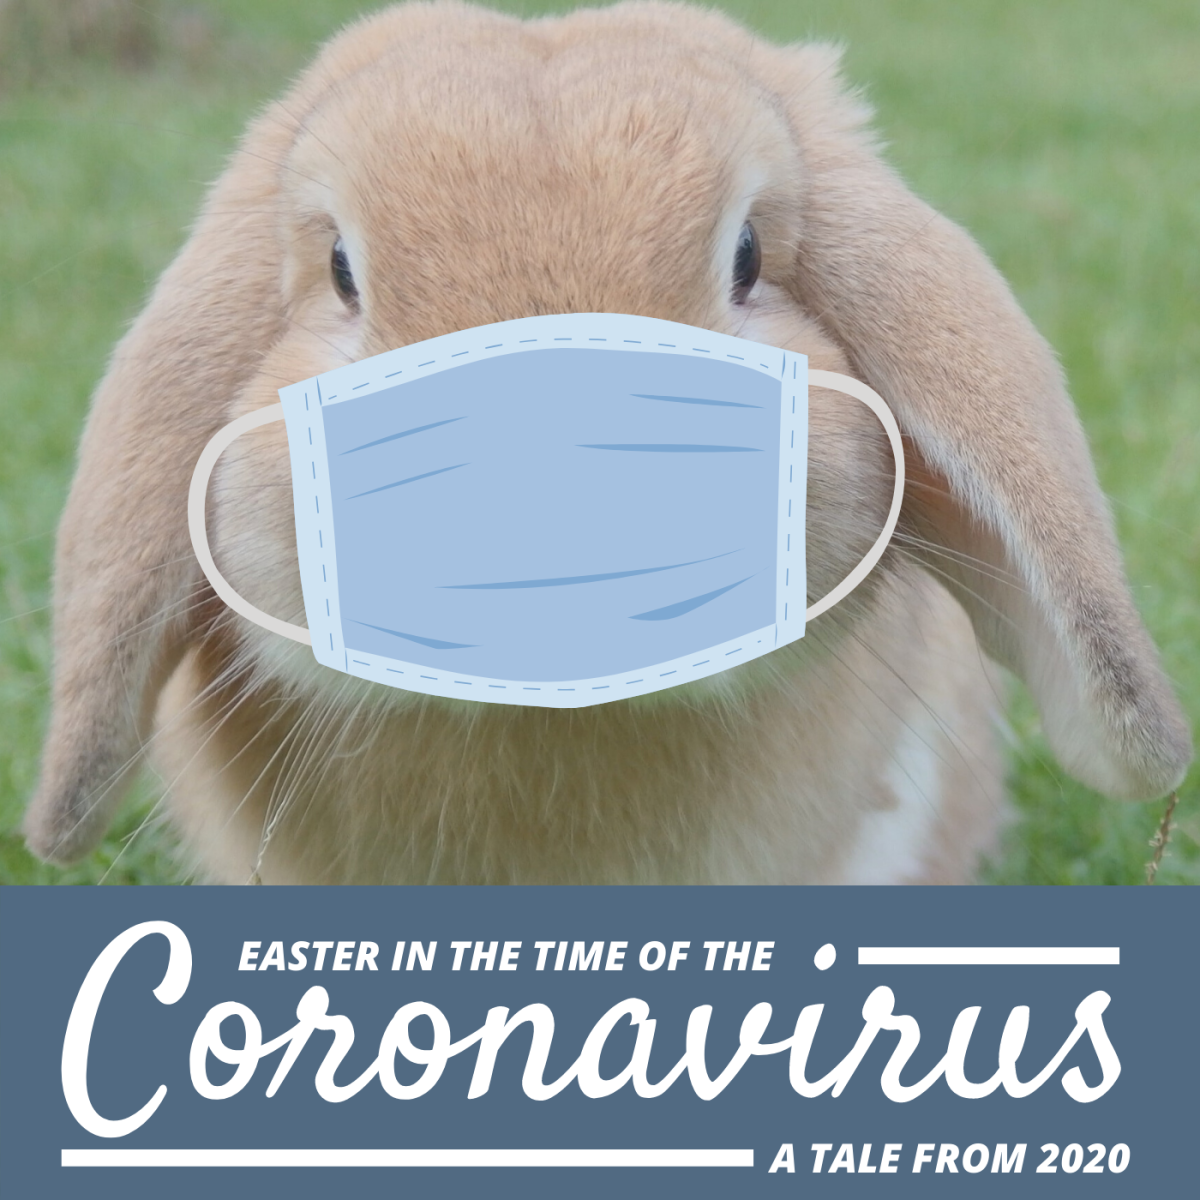 Easter During the Coronavirus: A Tale from 2020